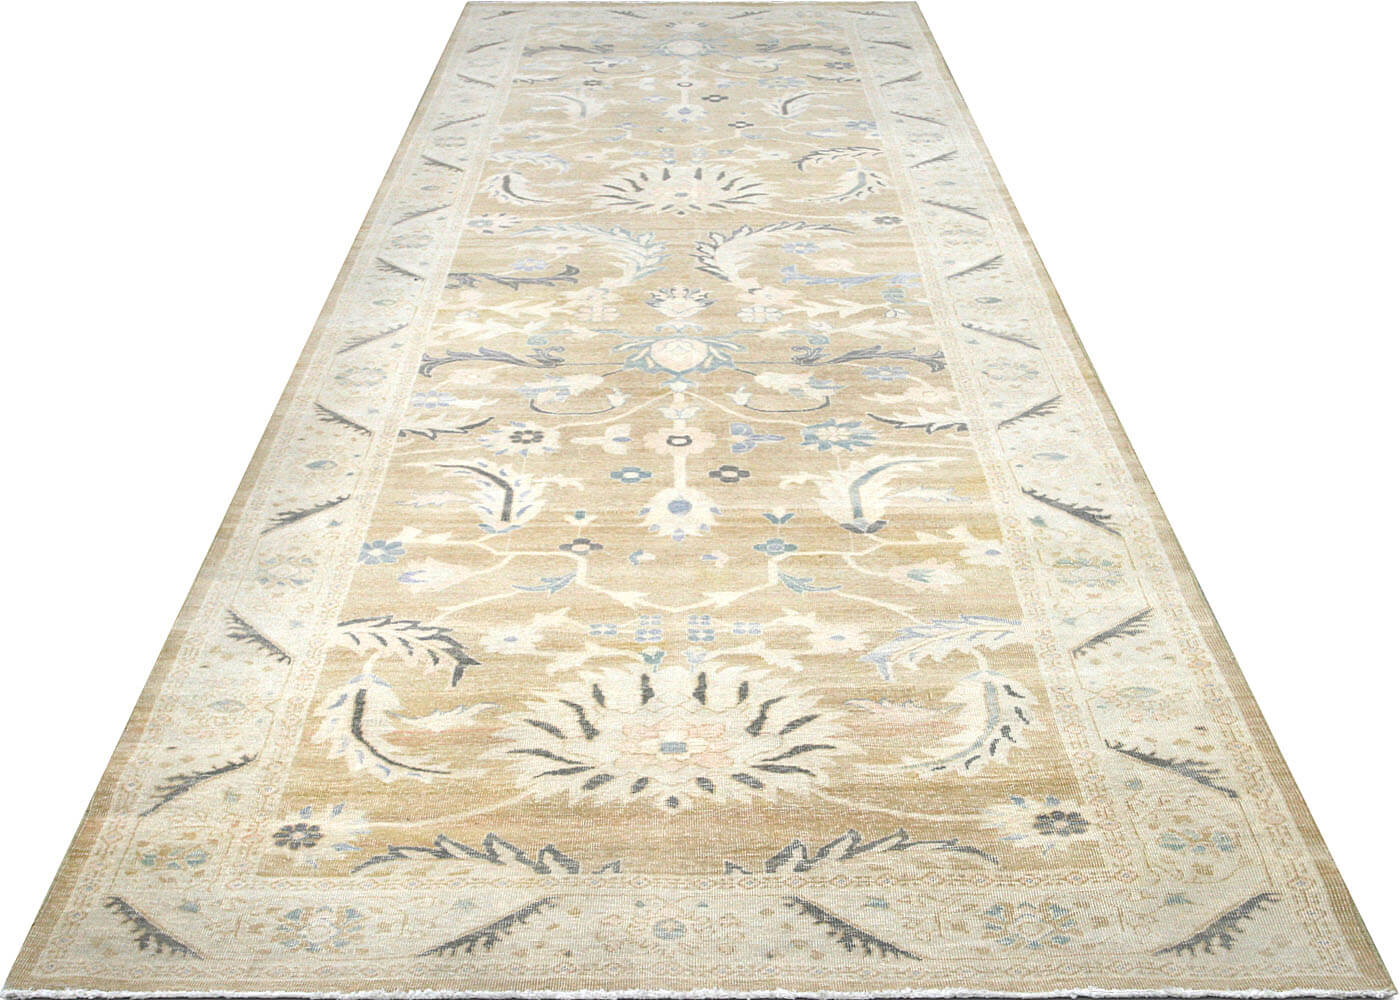 "Recently Woven Egyptian Sultanabad Carpet - 4'11"" x 14'10"""